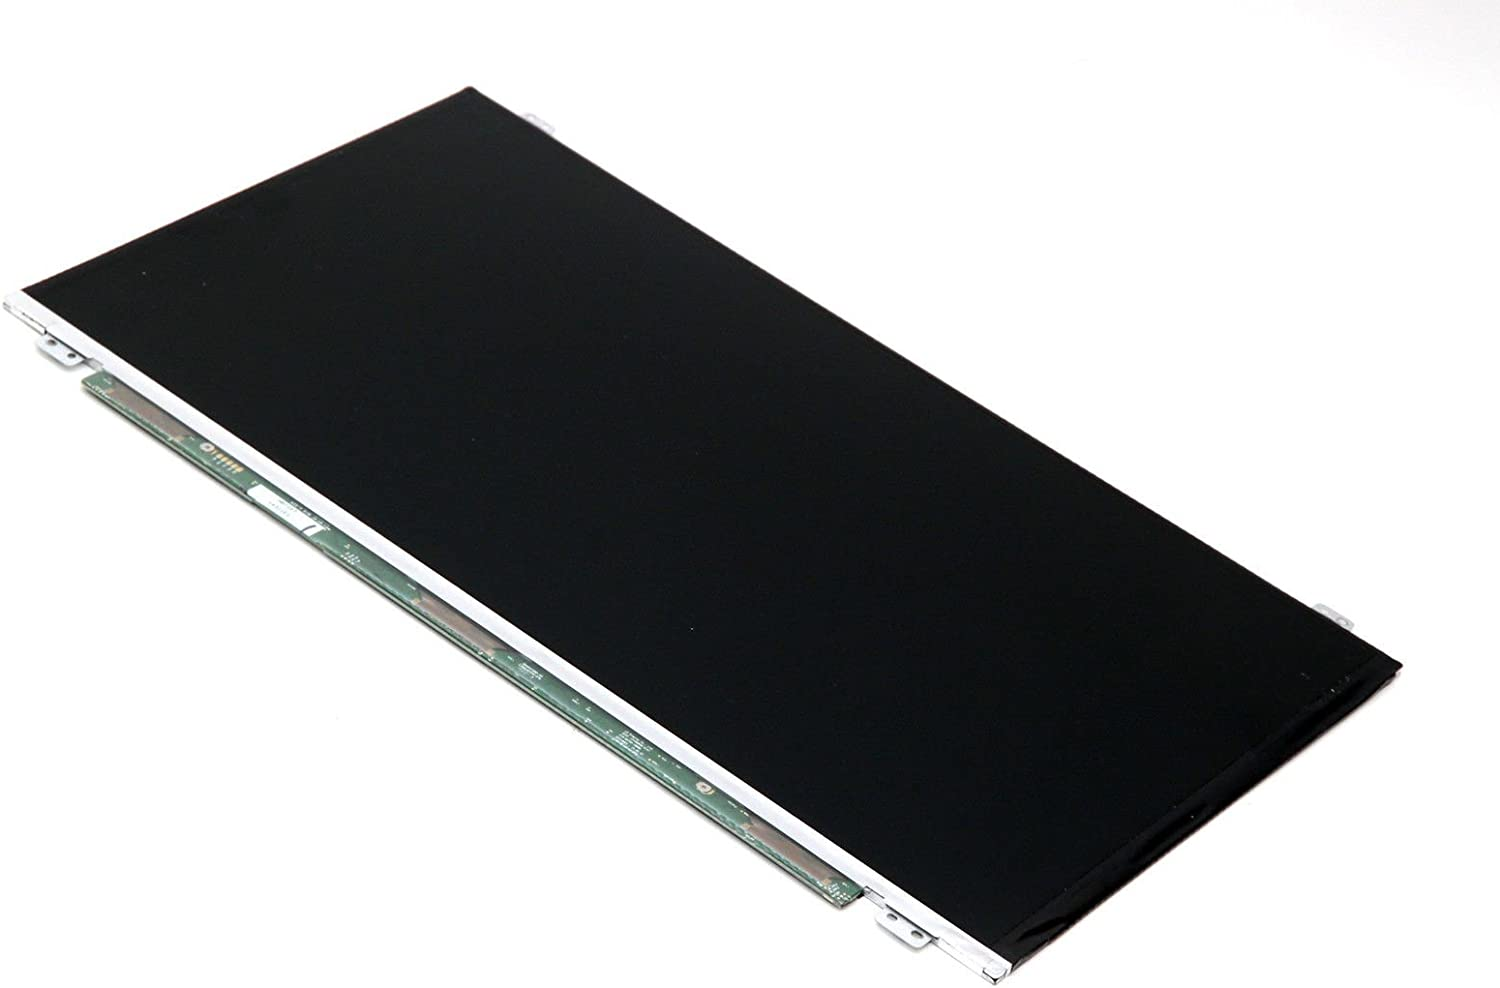 """New Generic LCD Display FITS - Acer Chromebook 15 Model N17Q5 15.6"""" IPS Touch Screen + Digitizer LED FHD 1080P on-Cell"""